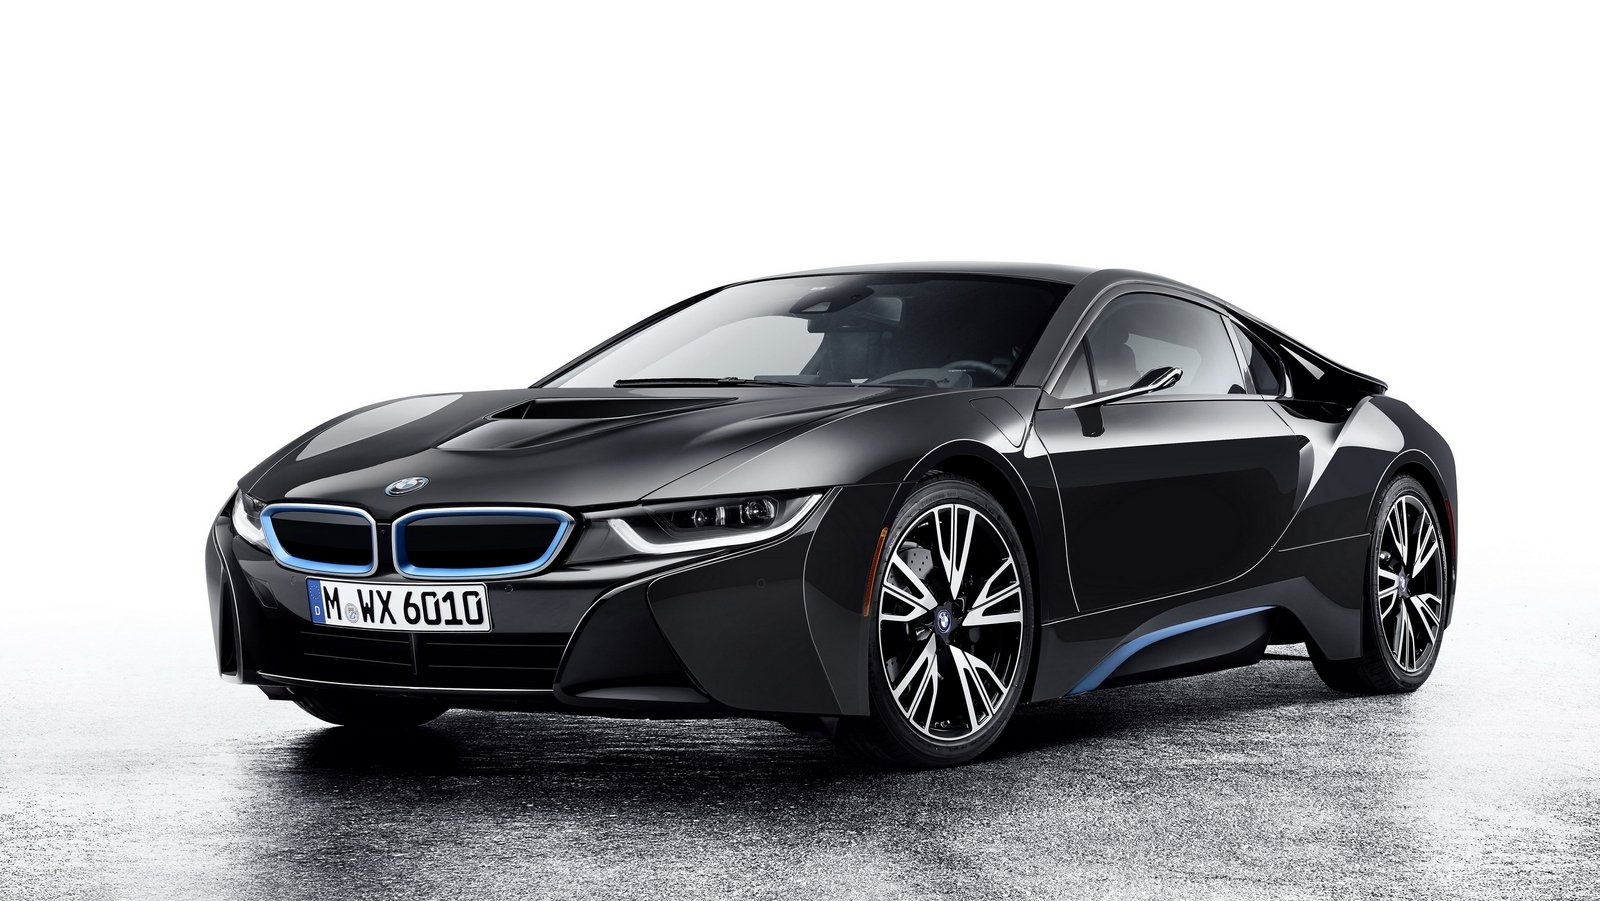 2016 bmw i8 mirrorless concept picture 660766 car. Black Bedroom Furniture Sets. Home Design Ideas